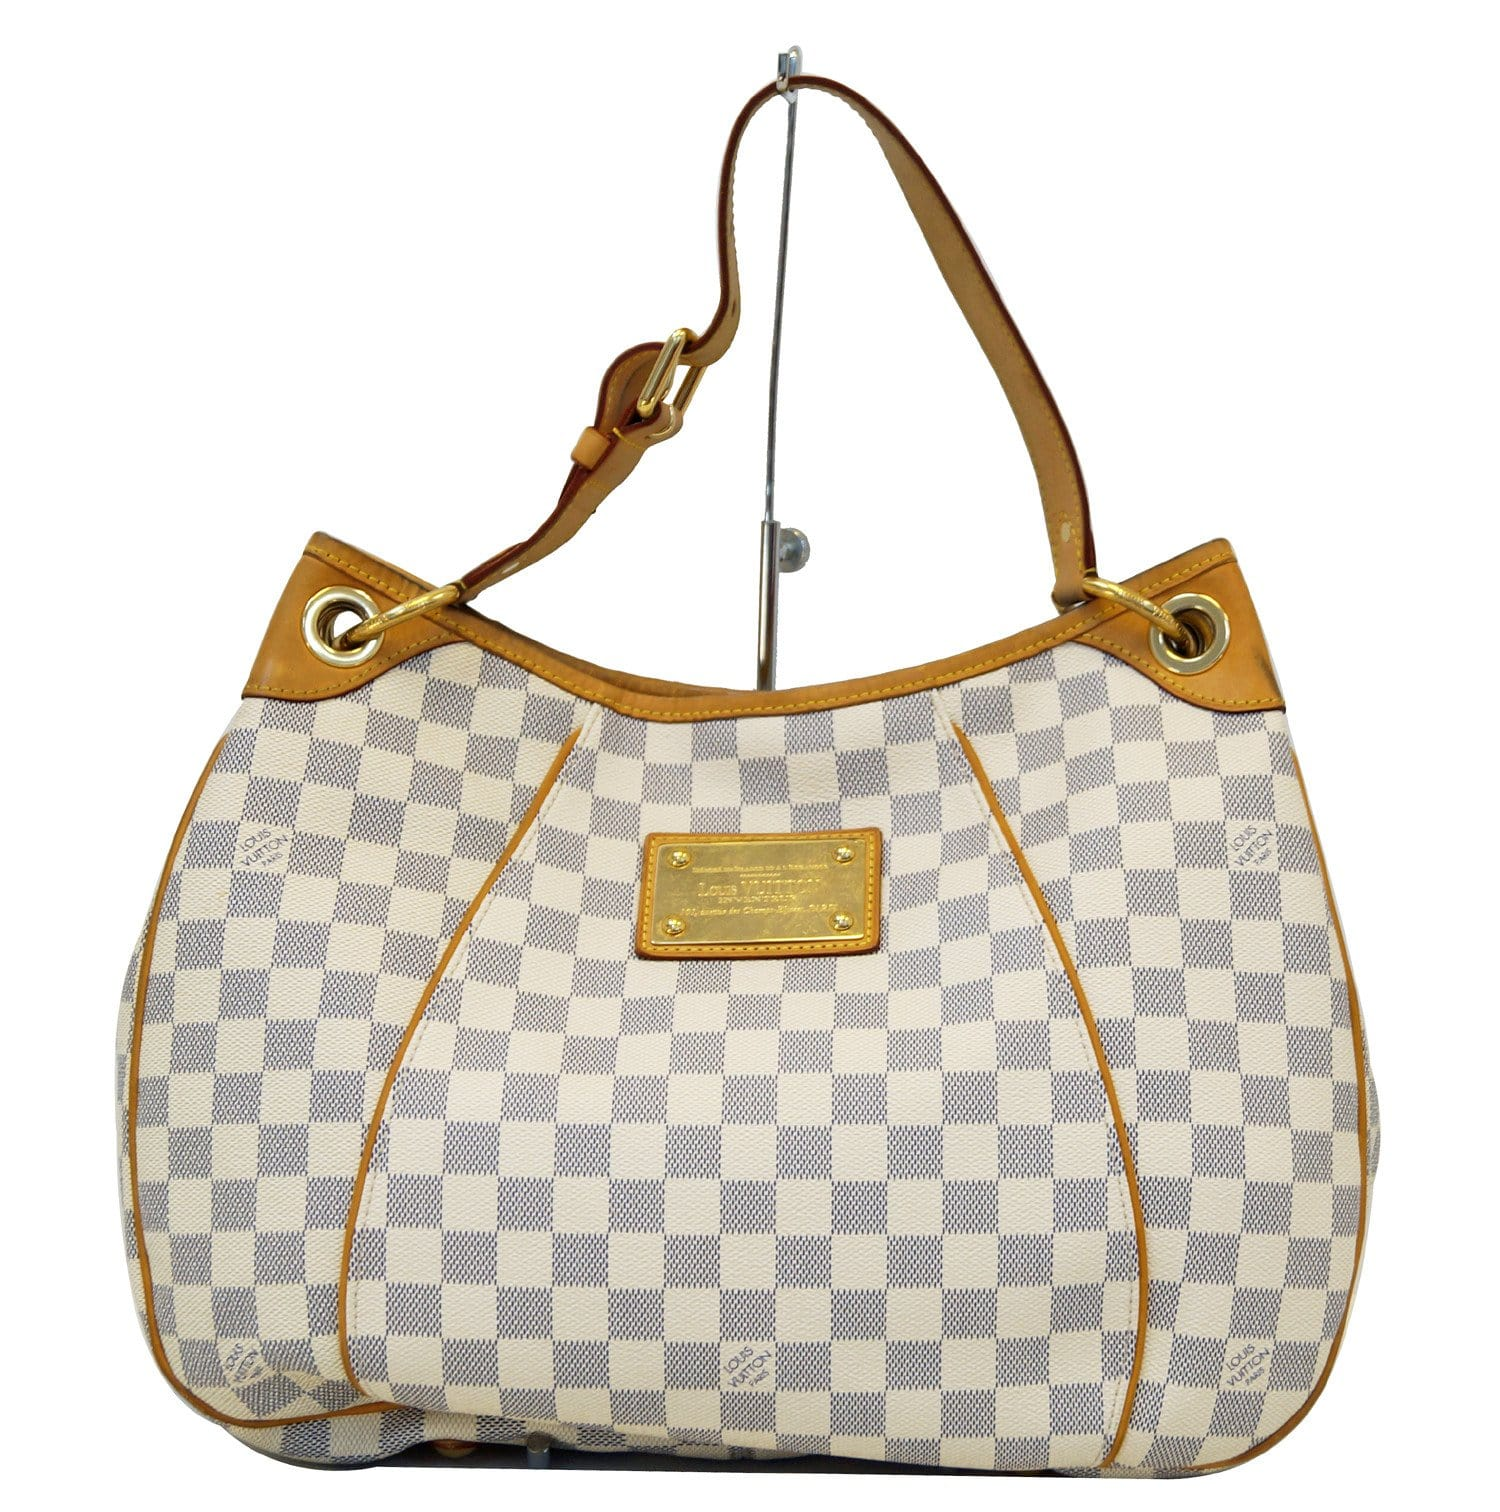 e398fbebca309 LOUIS VUITTON Damier Azur Galliera PM Shoulder Bag